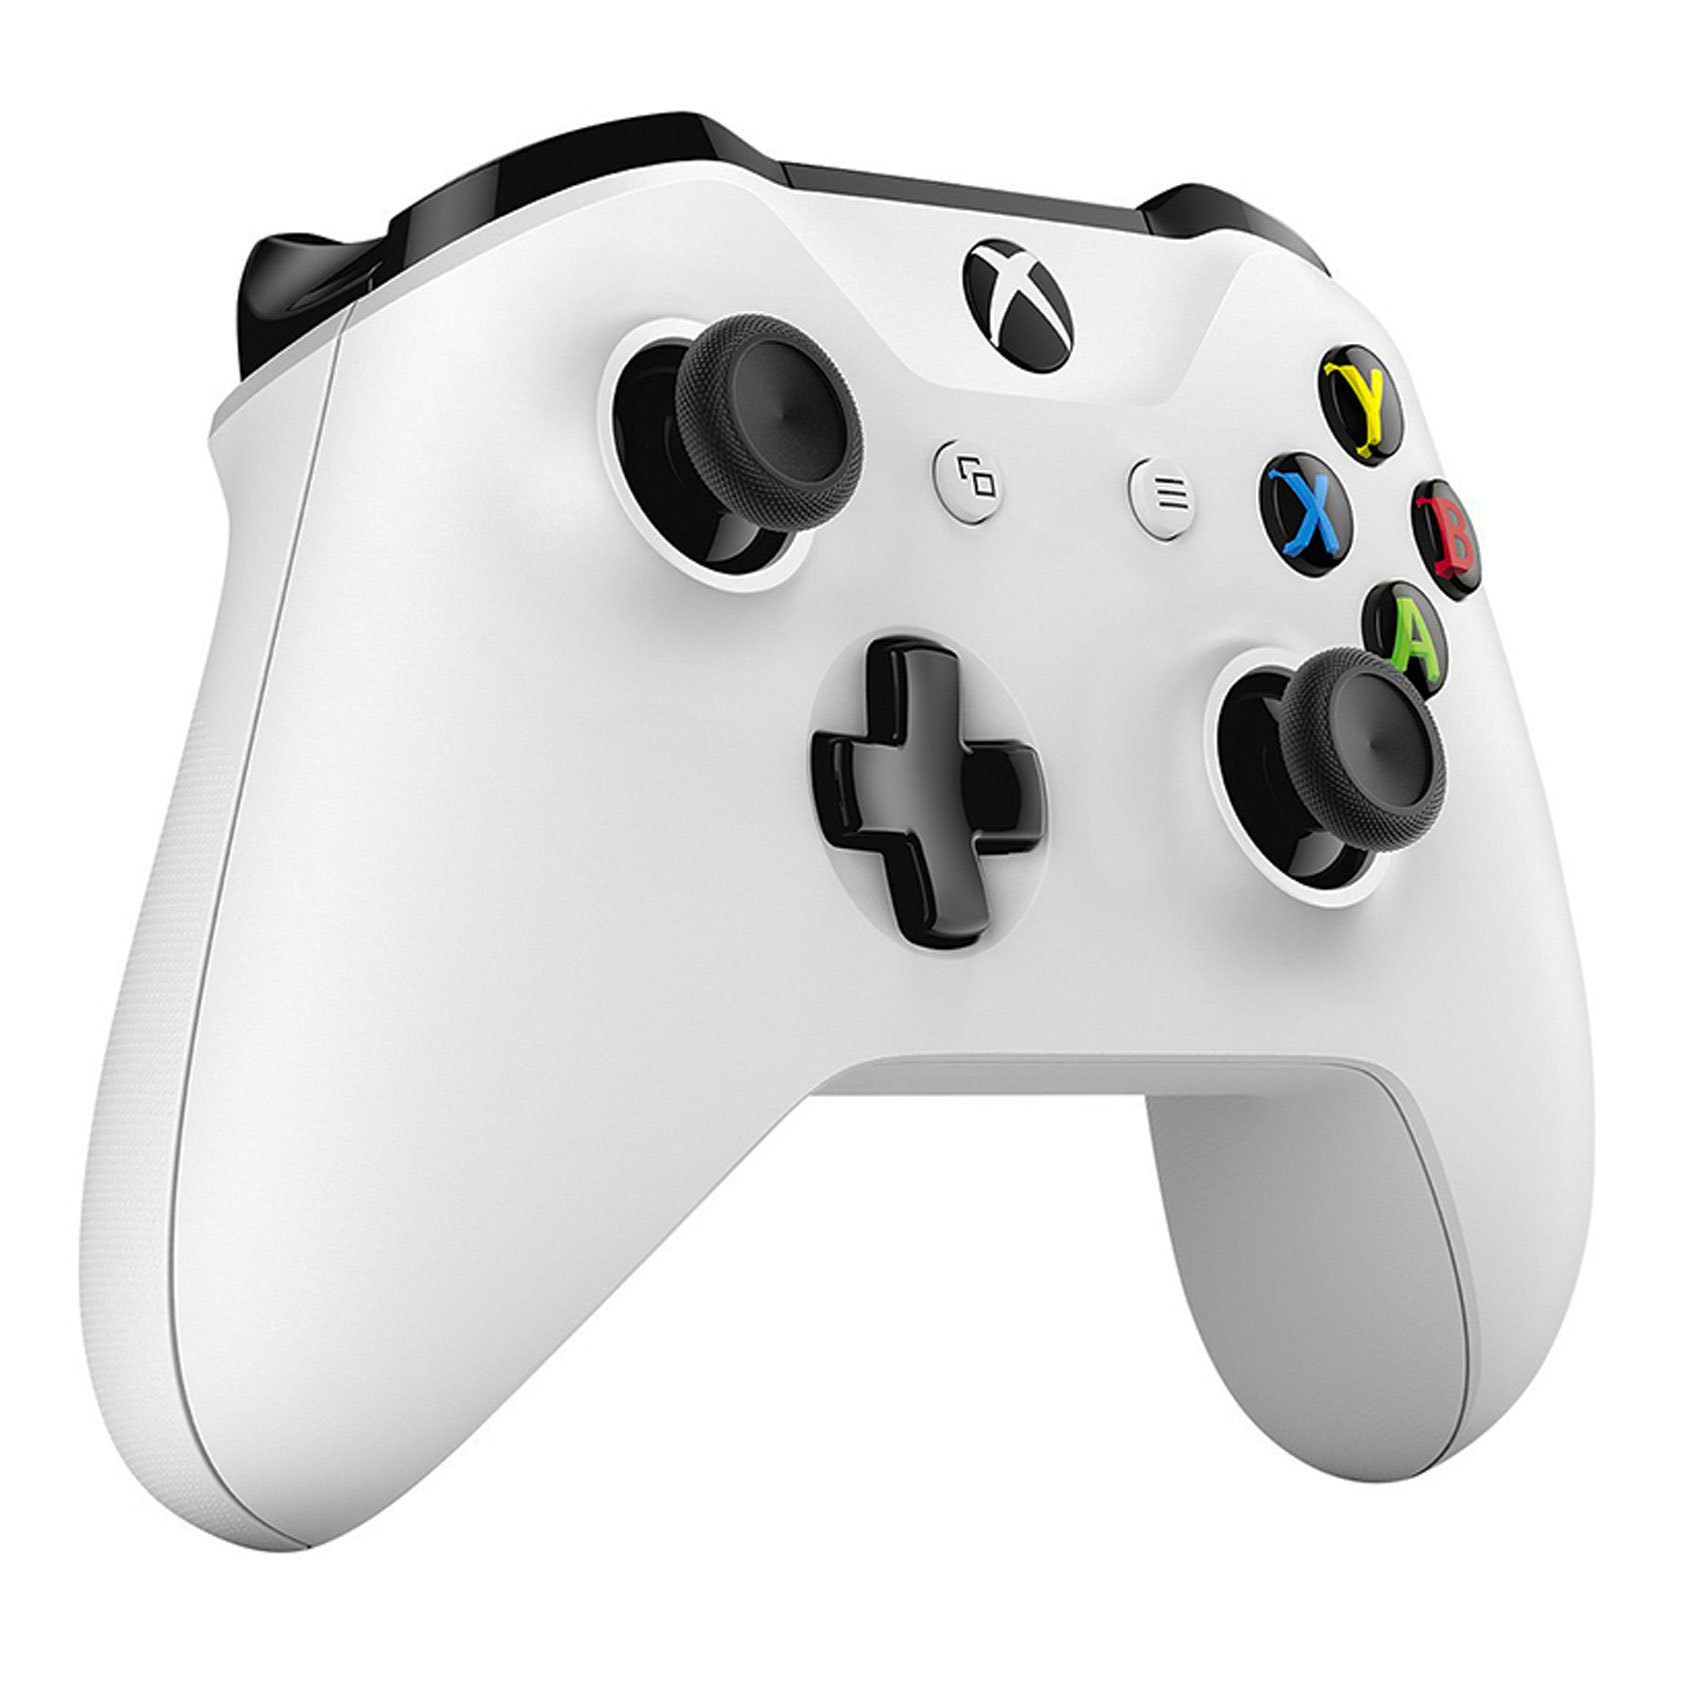 Find out how to connect your Xbox Wireless Controller to a Windows PC